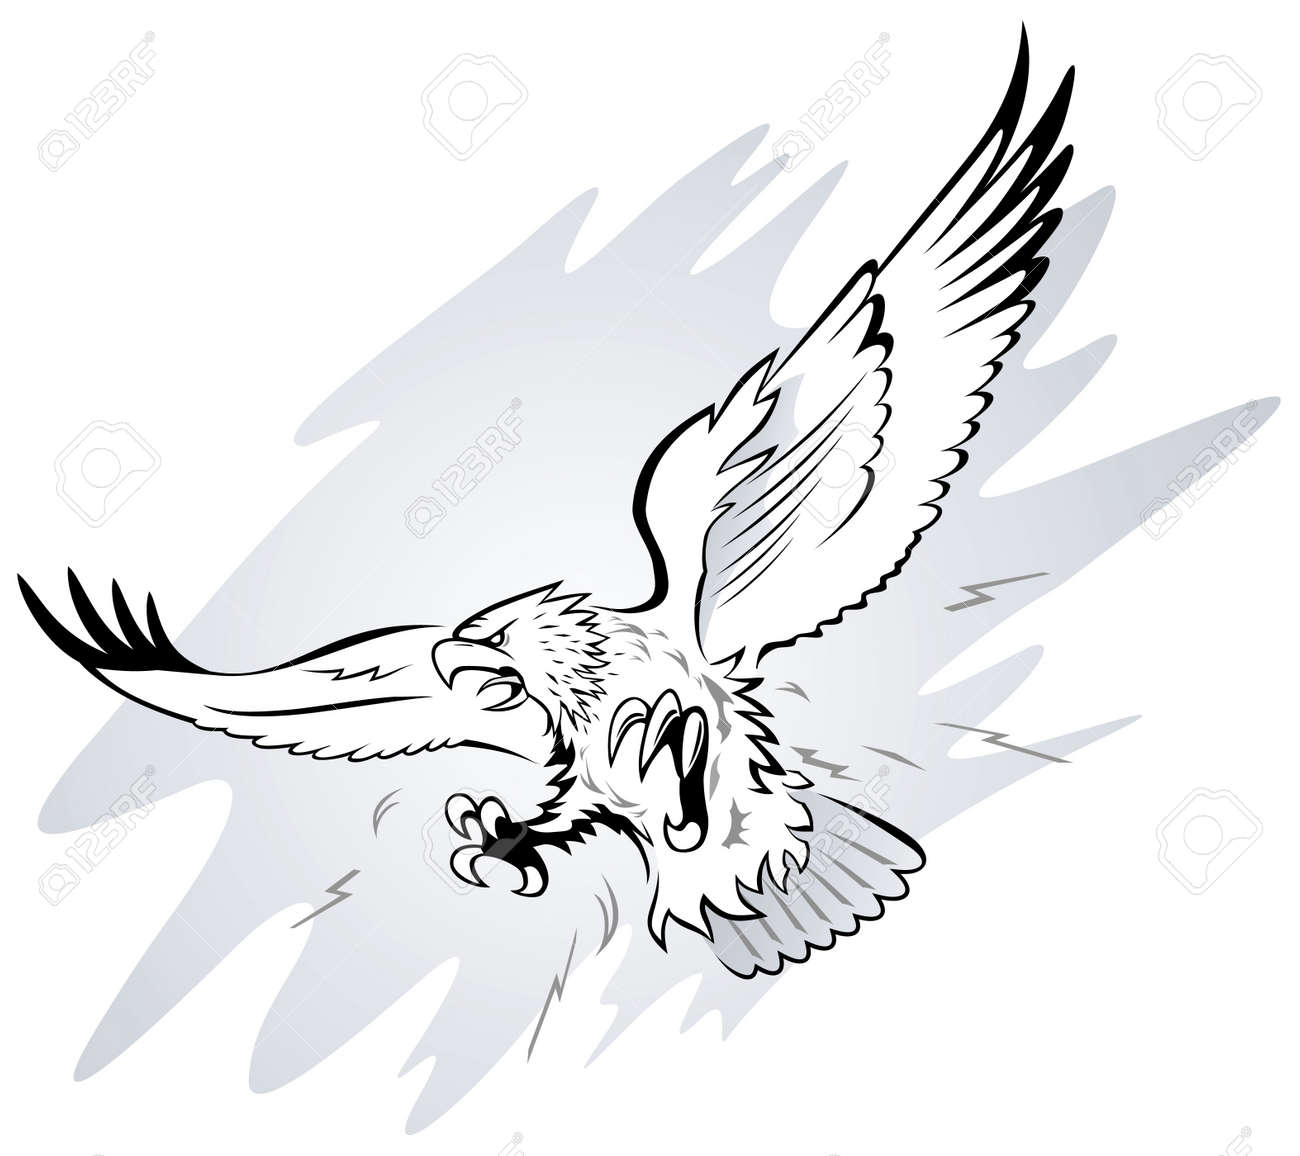 Spread Winged Eagle with Claws  Eagle Wings Spread Clipart Black And White